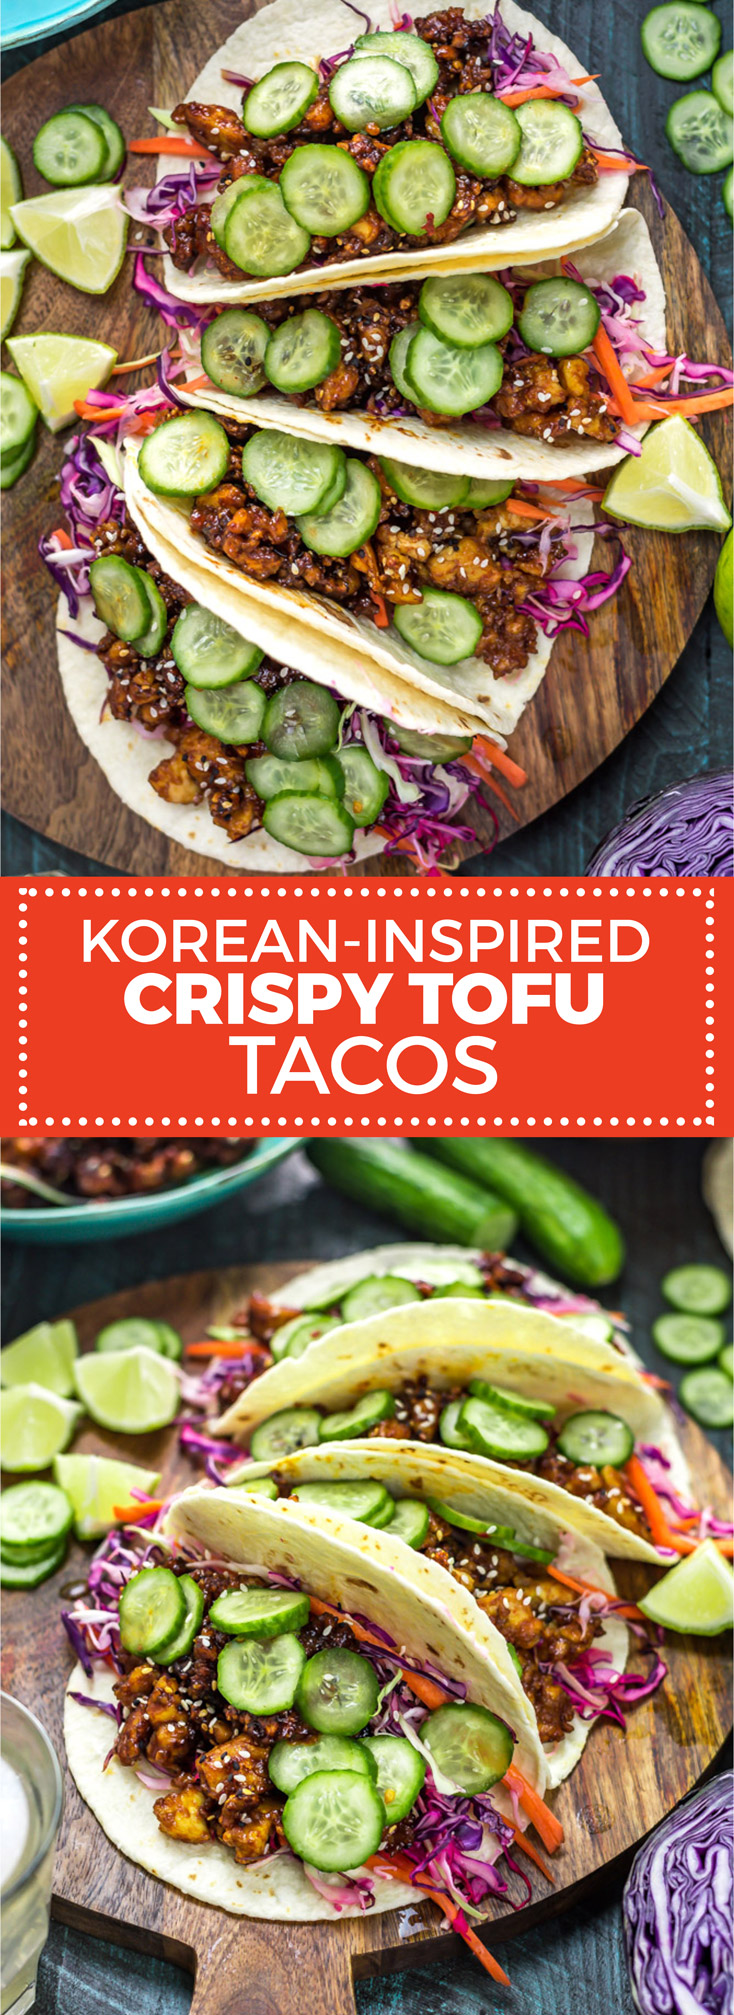 Korean-Inspired Crispy Tofu Tacos. Learn the secret to making the best crispy tofu and serve it in flavor-packed tacos with crunchy slaw and quick pickles.